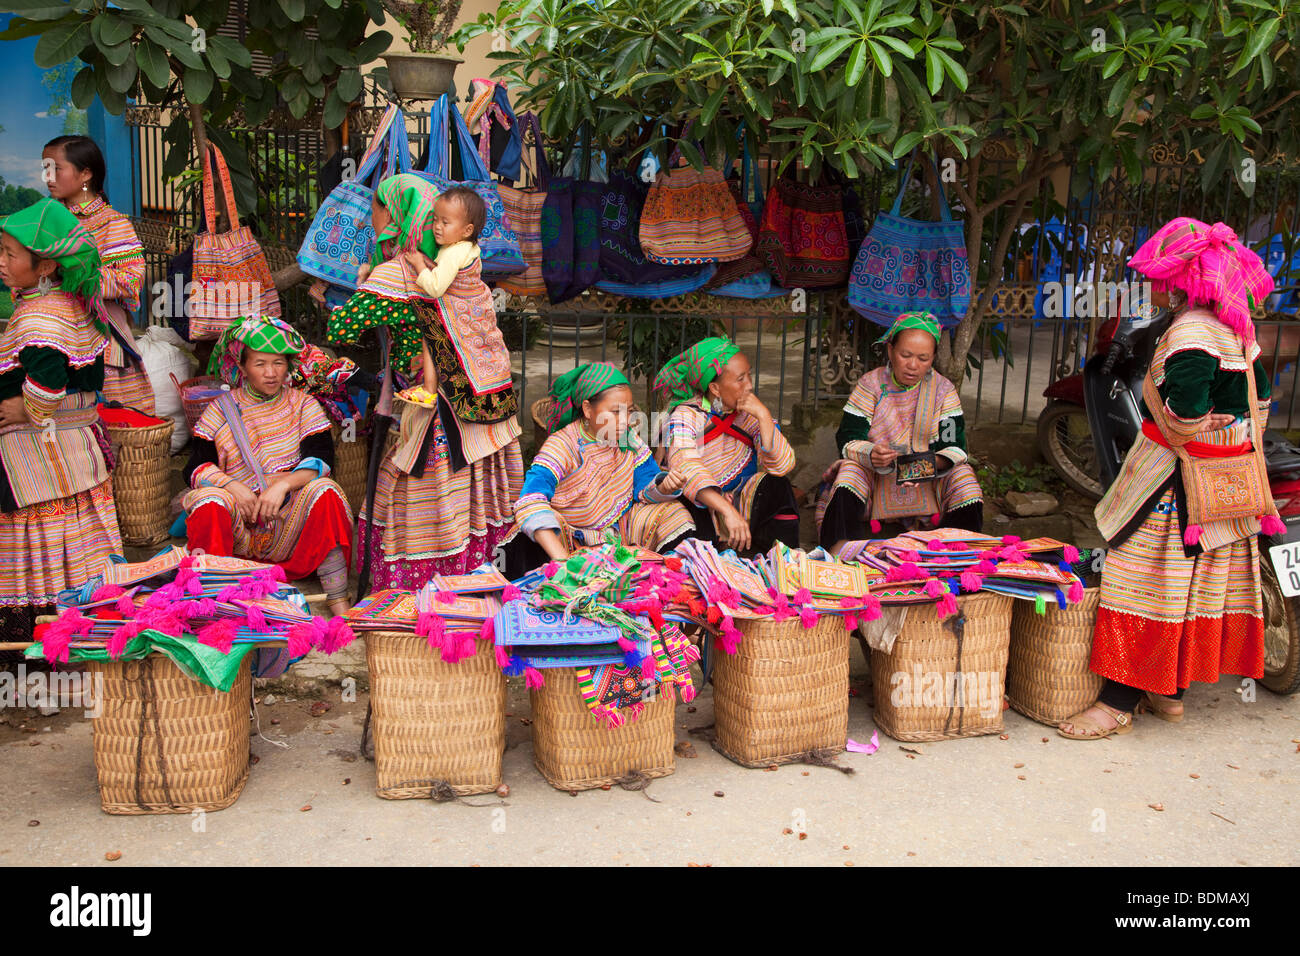 Flower Hmong tribe from northern Vietnam - Stock Image